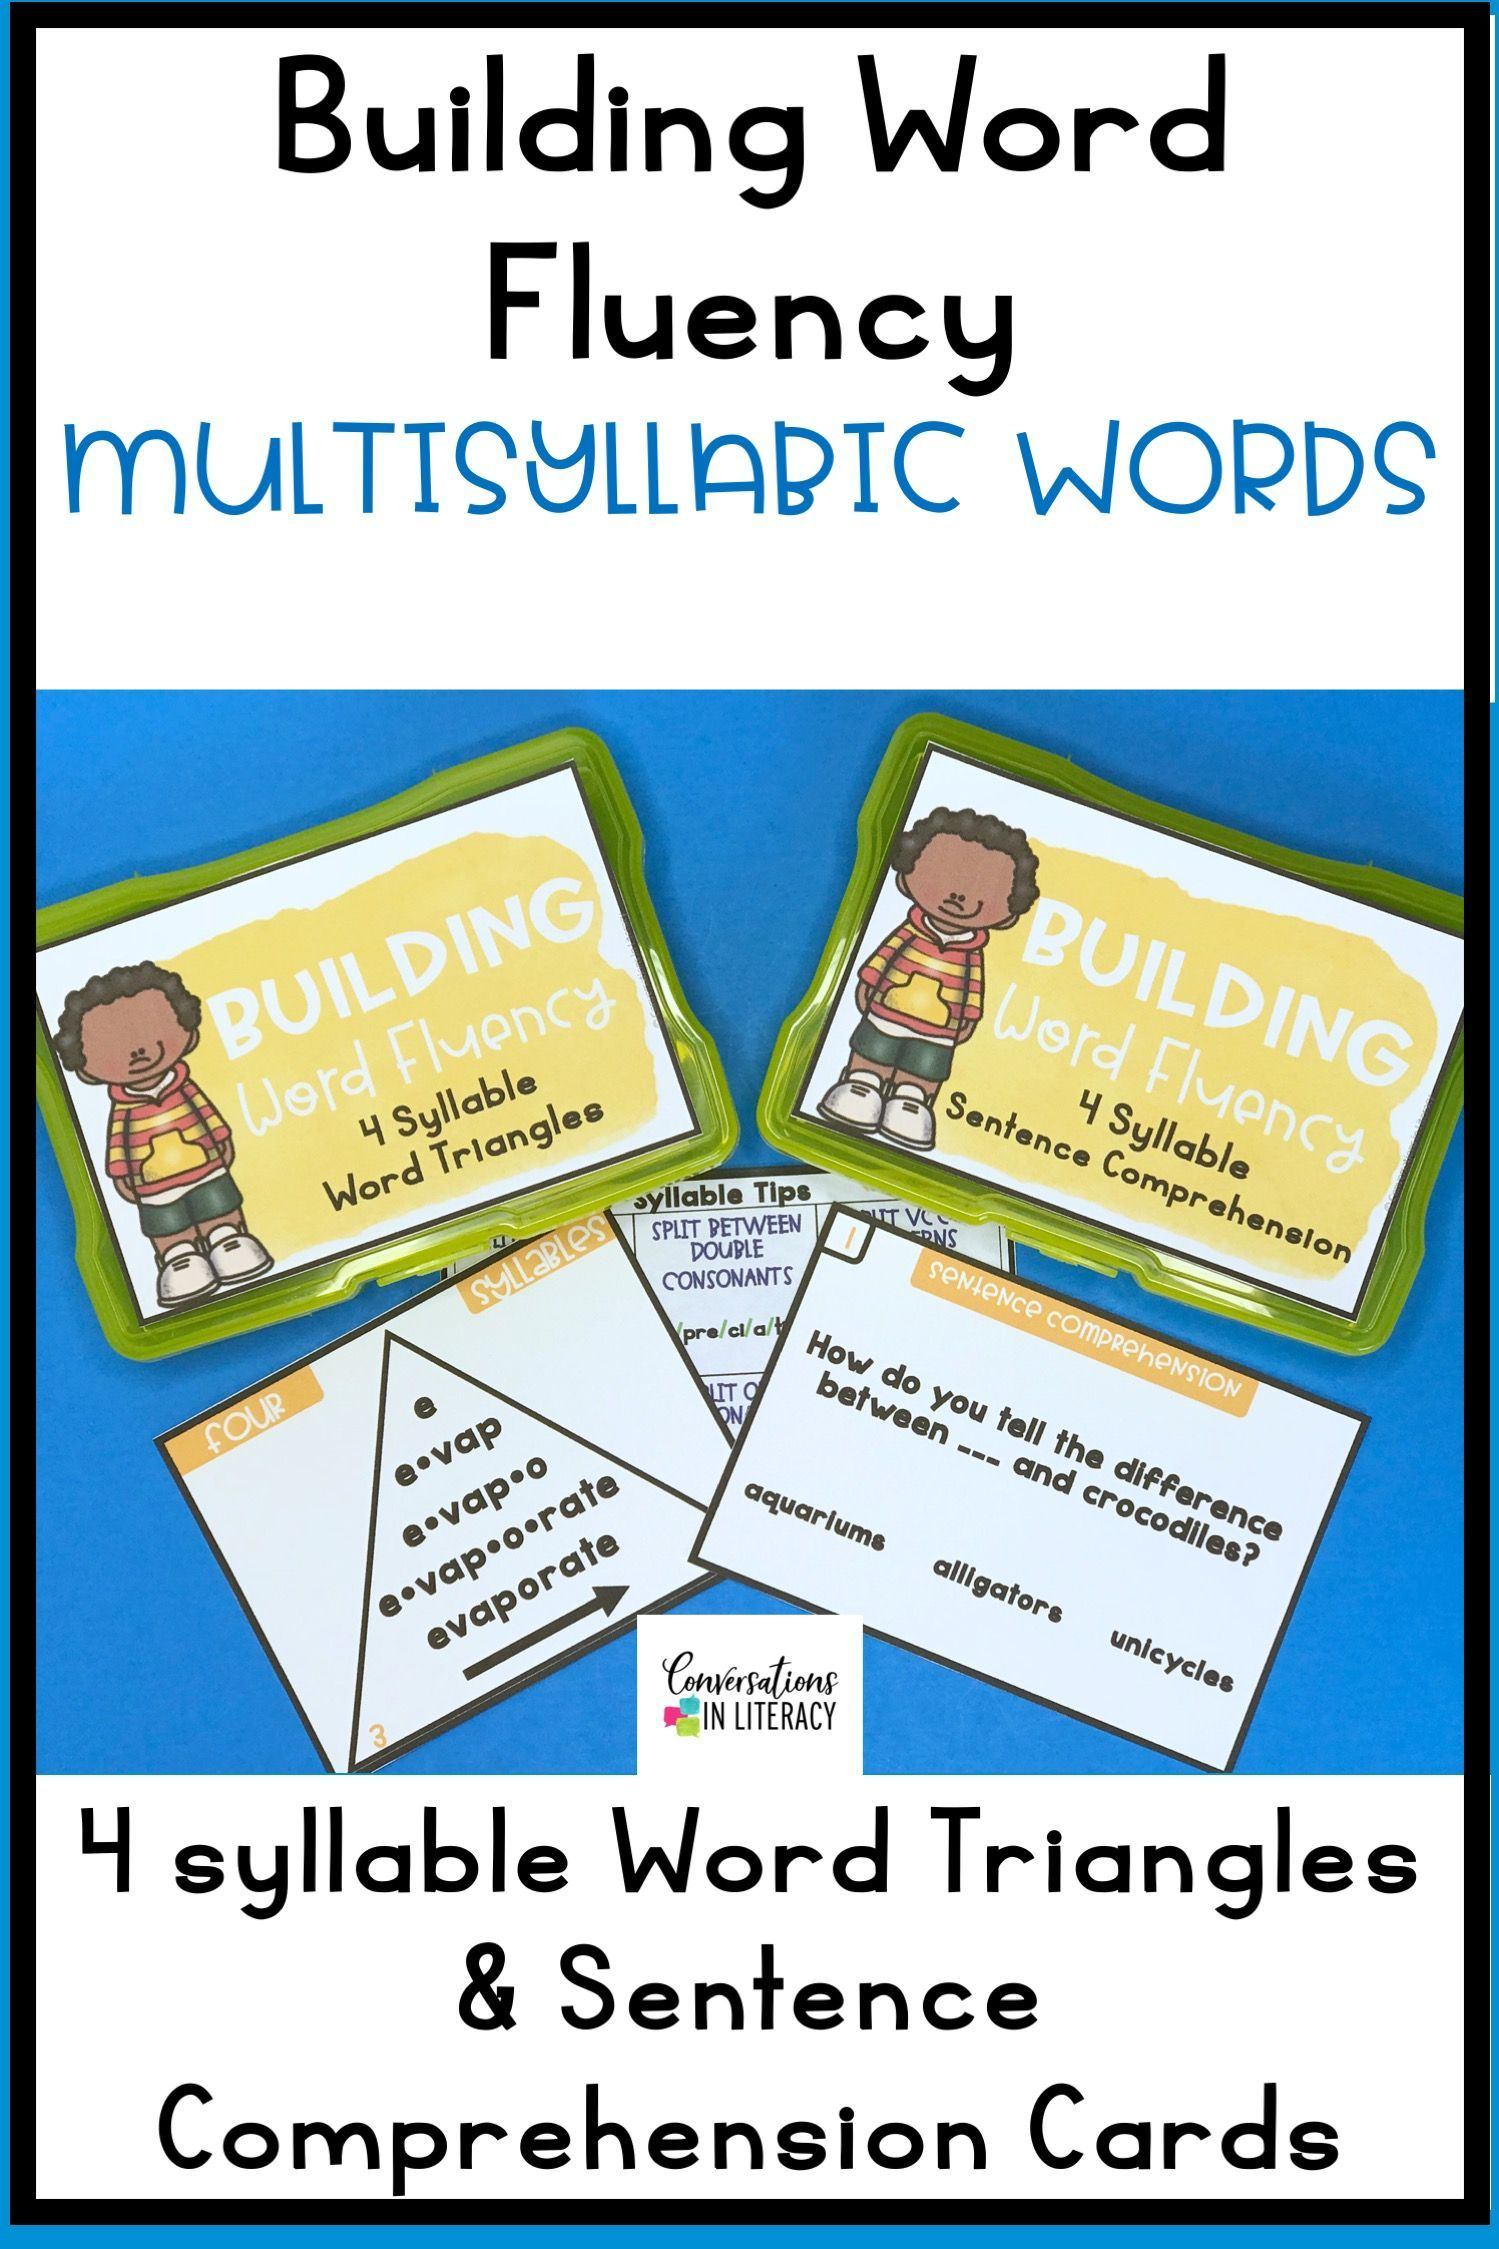 hight resolution of Decoding Multisyllabic Words (4 syllables) with Word Triangles and Sentence  …   Multisyllabic words